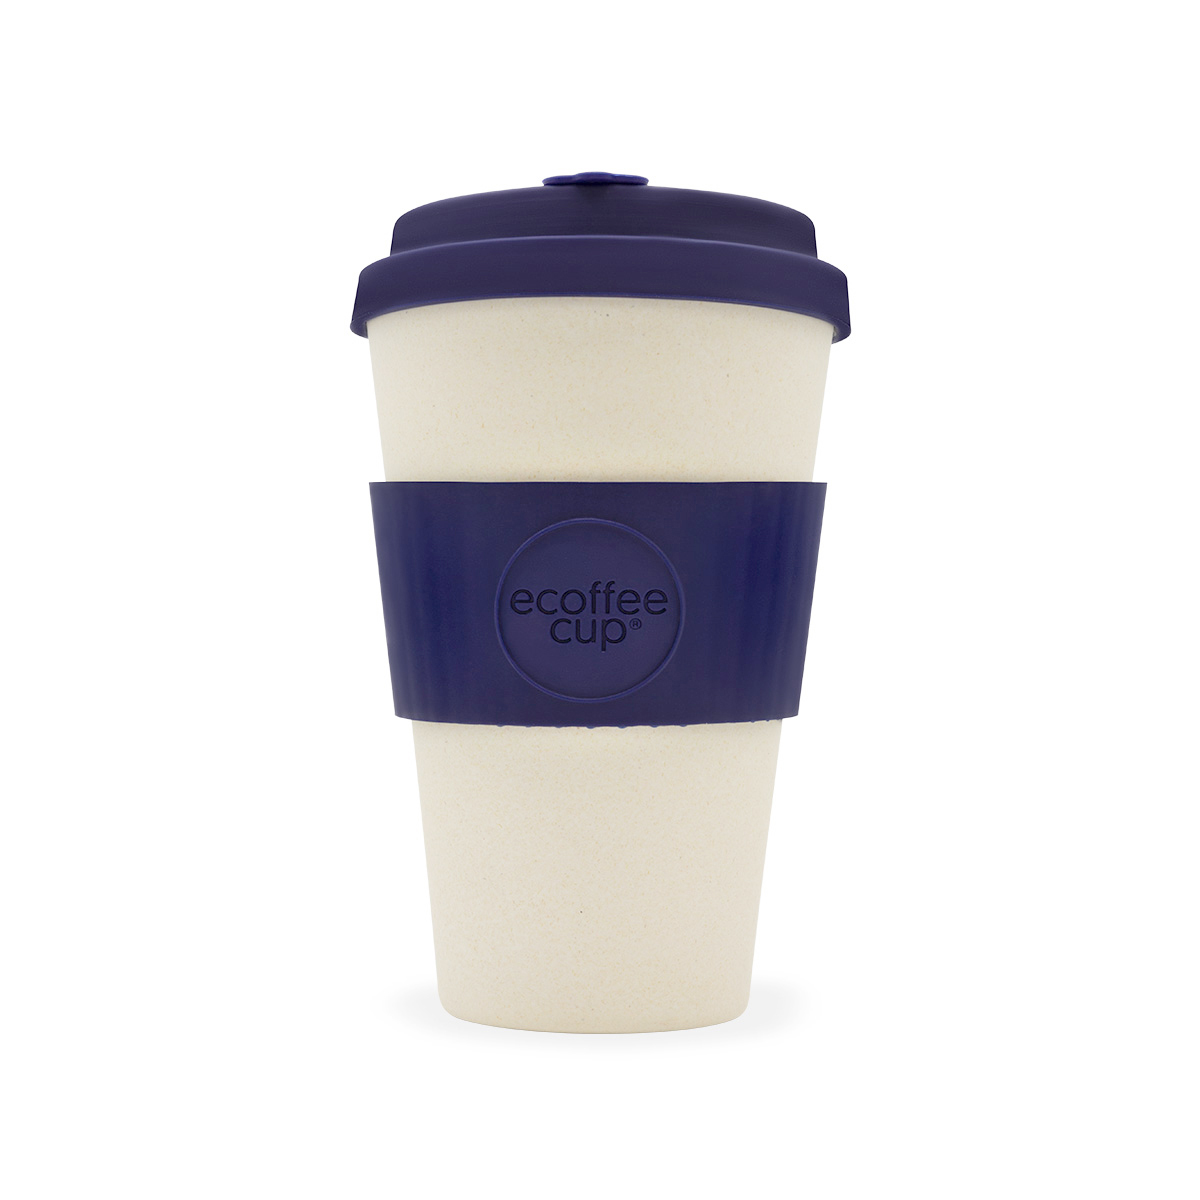 Catering Utensils Ecoffee Eco 14oz Blue Nature Cup Ref 0303029